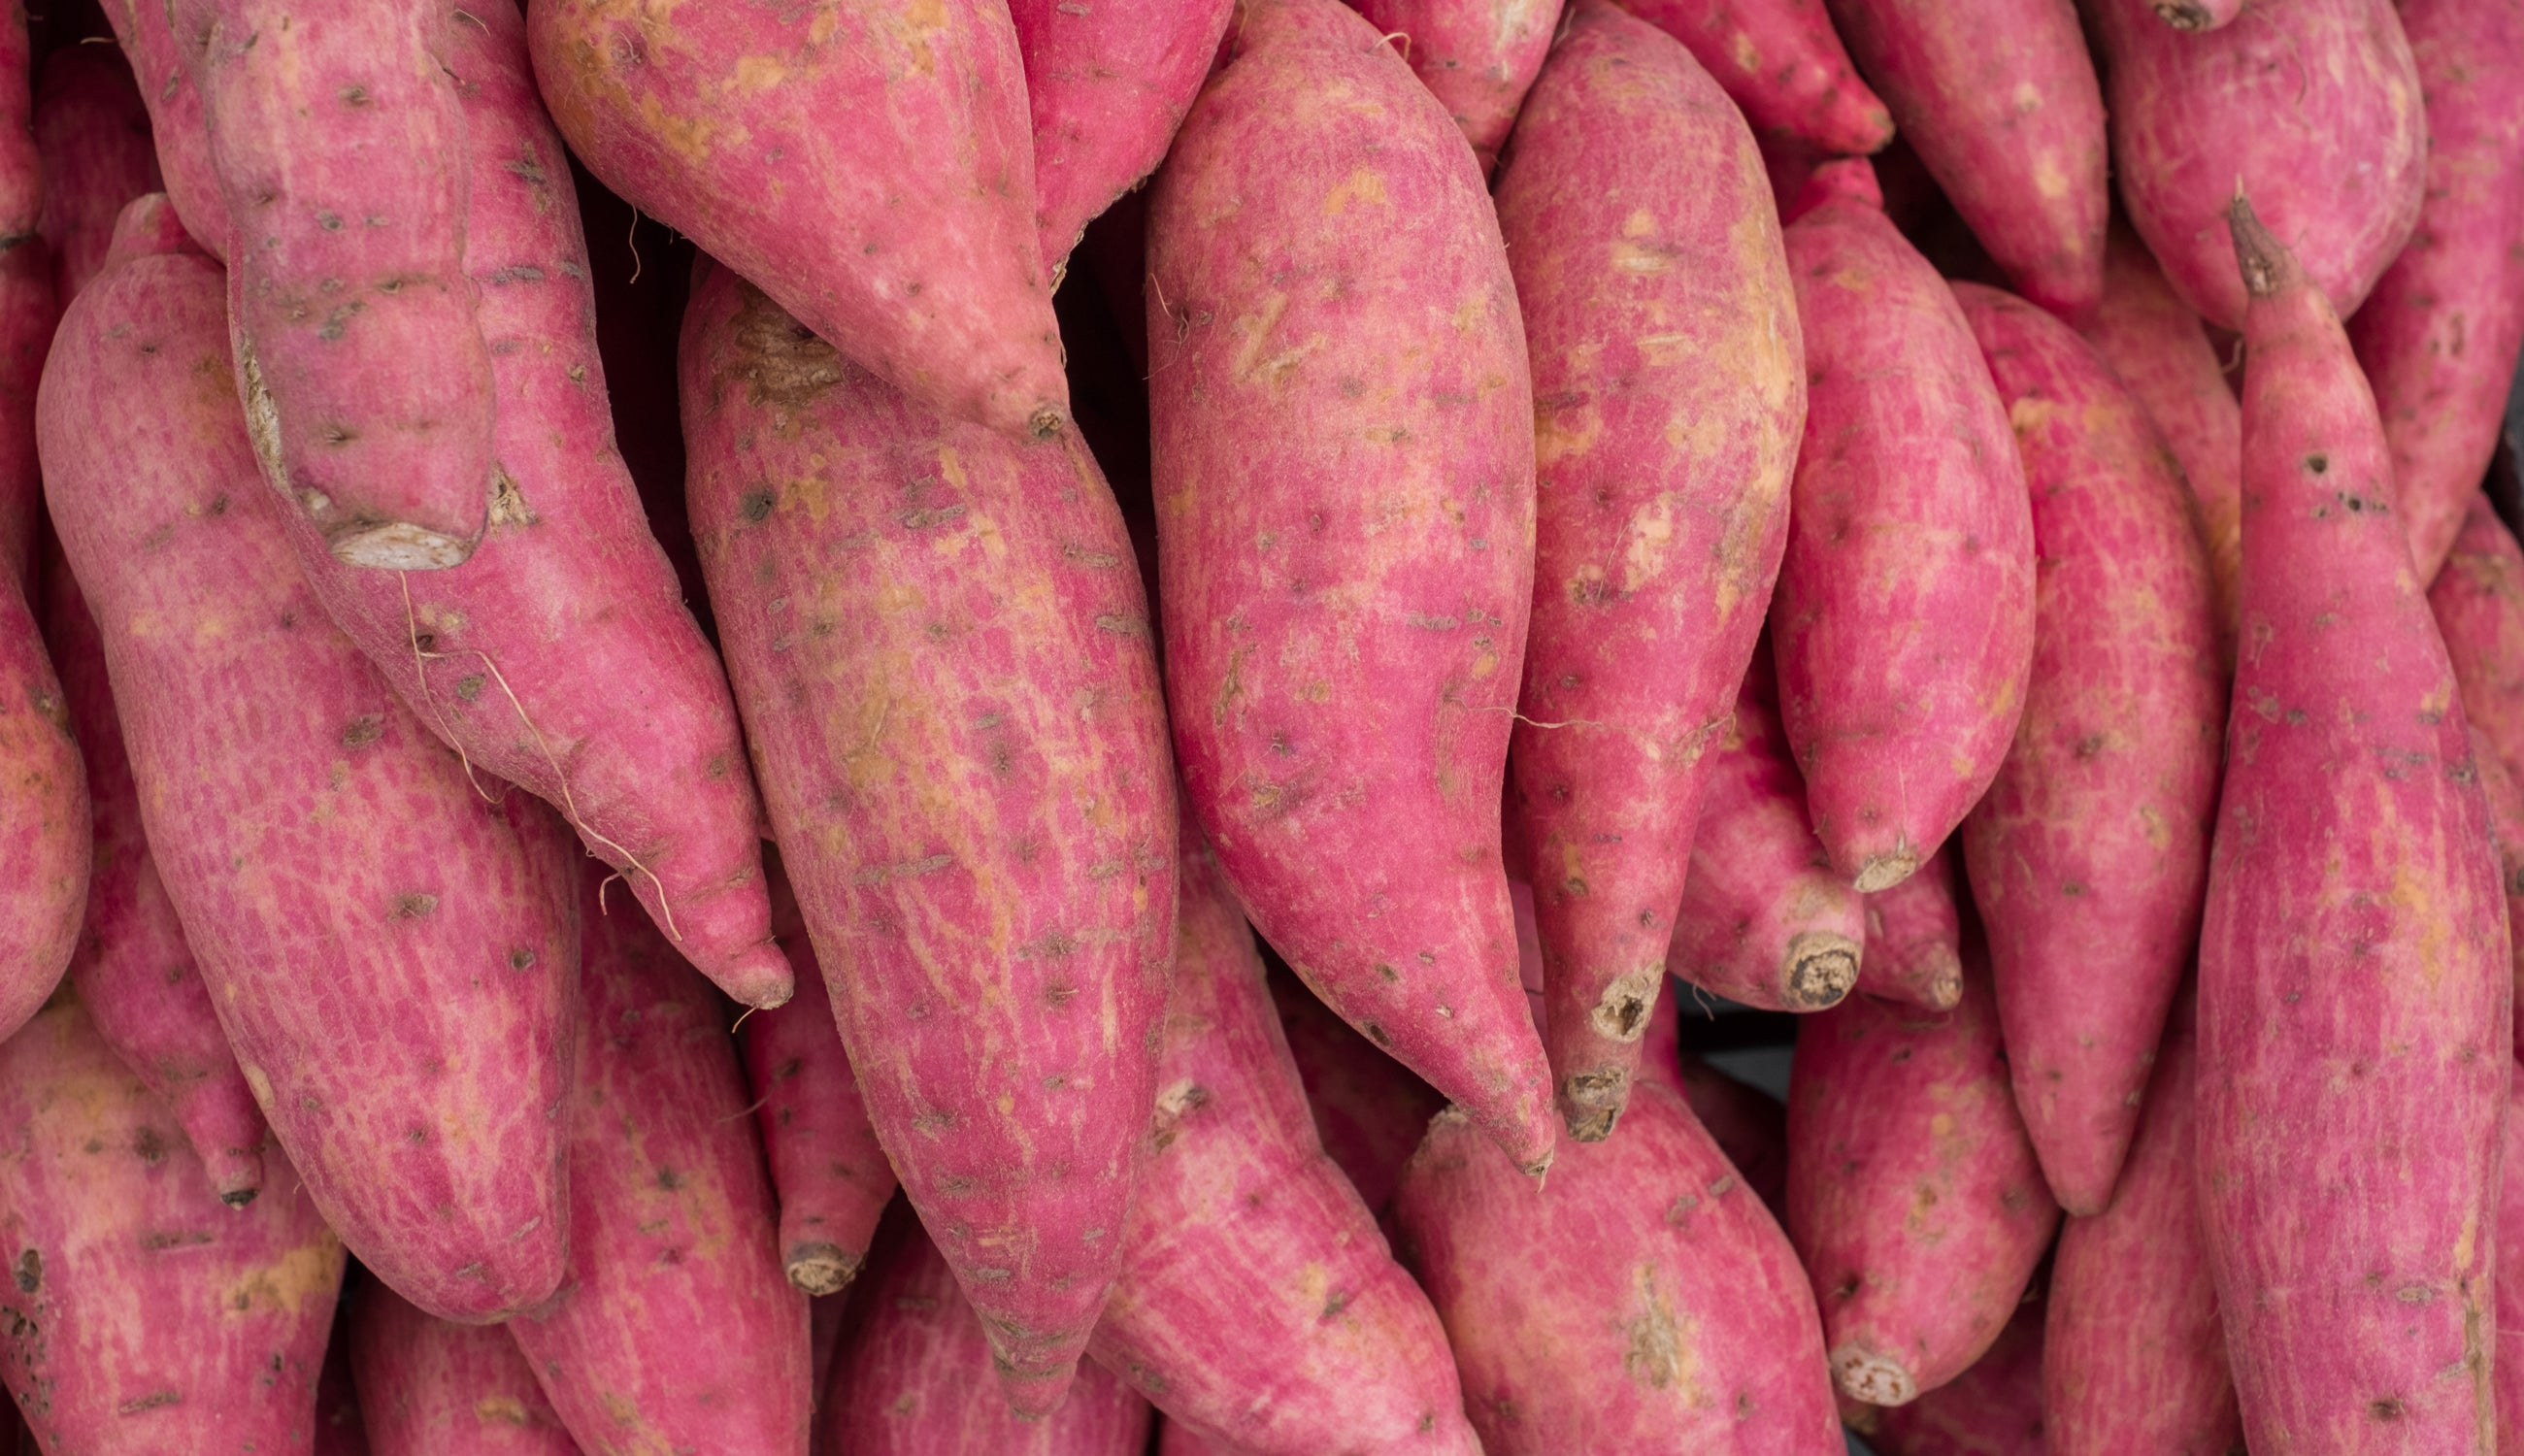 Sweet Potato Hyalouronic Acid